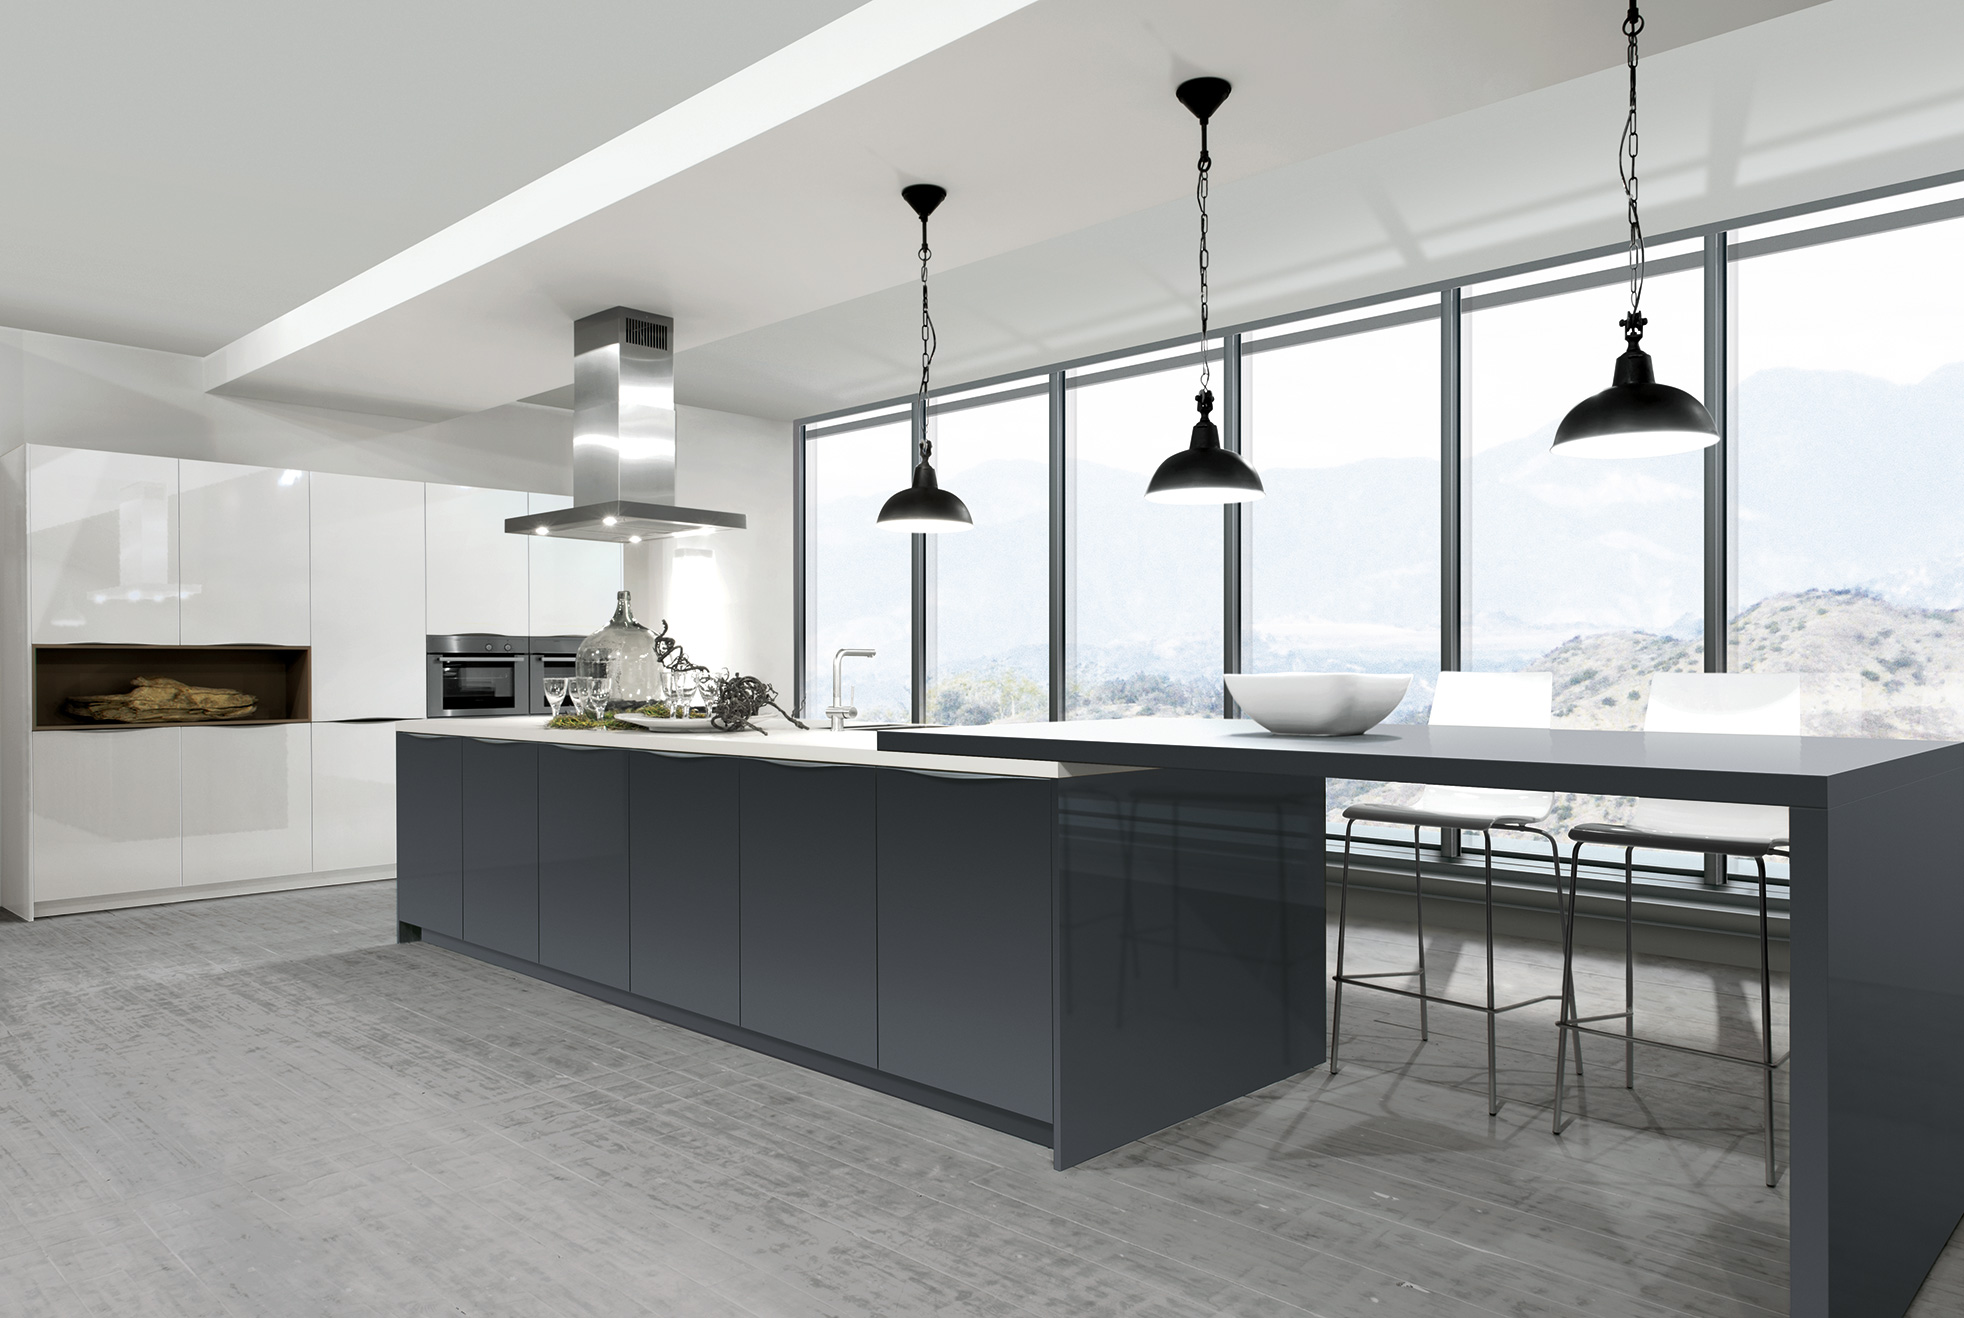 Tafel Für Küchenwand Rotpunkt Kitchens Uk High End Bespoke Kitchens